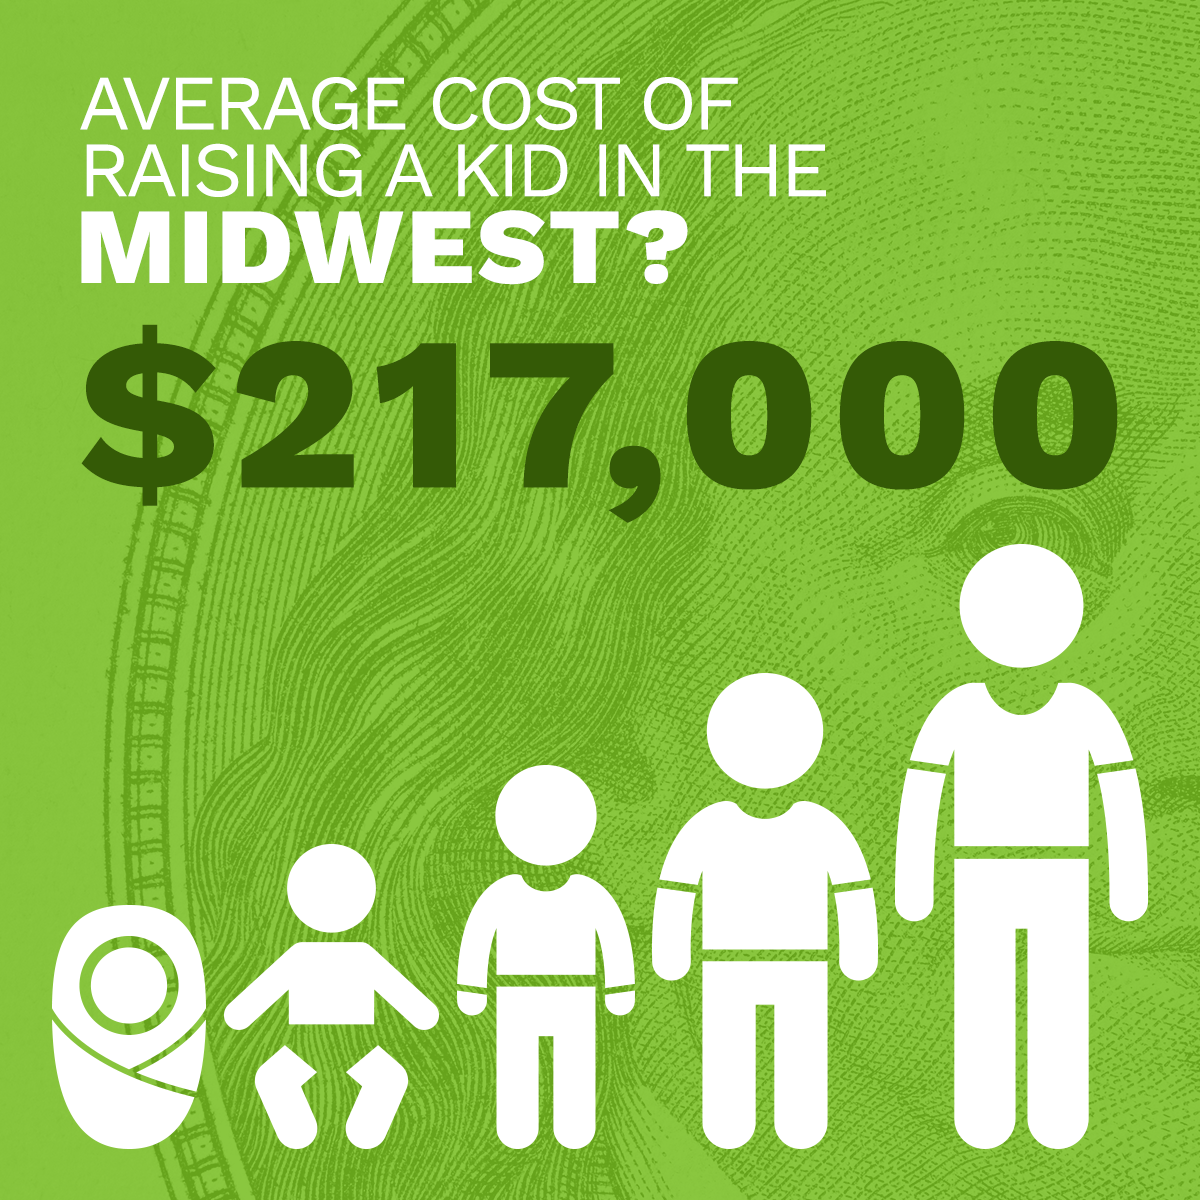 cost of raising a kid in the midwest